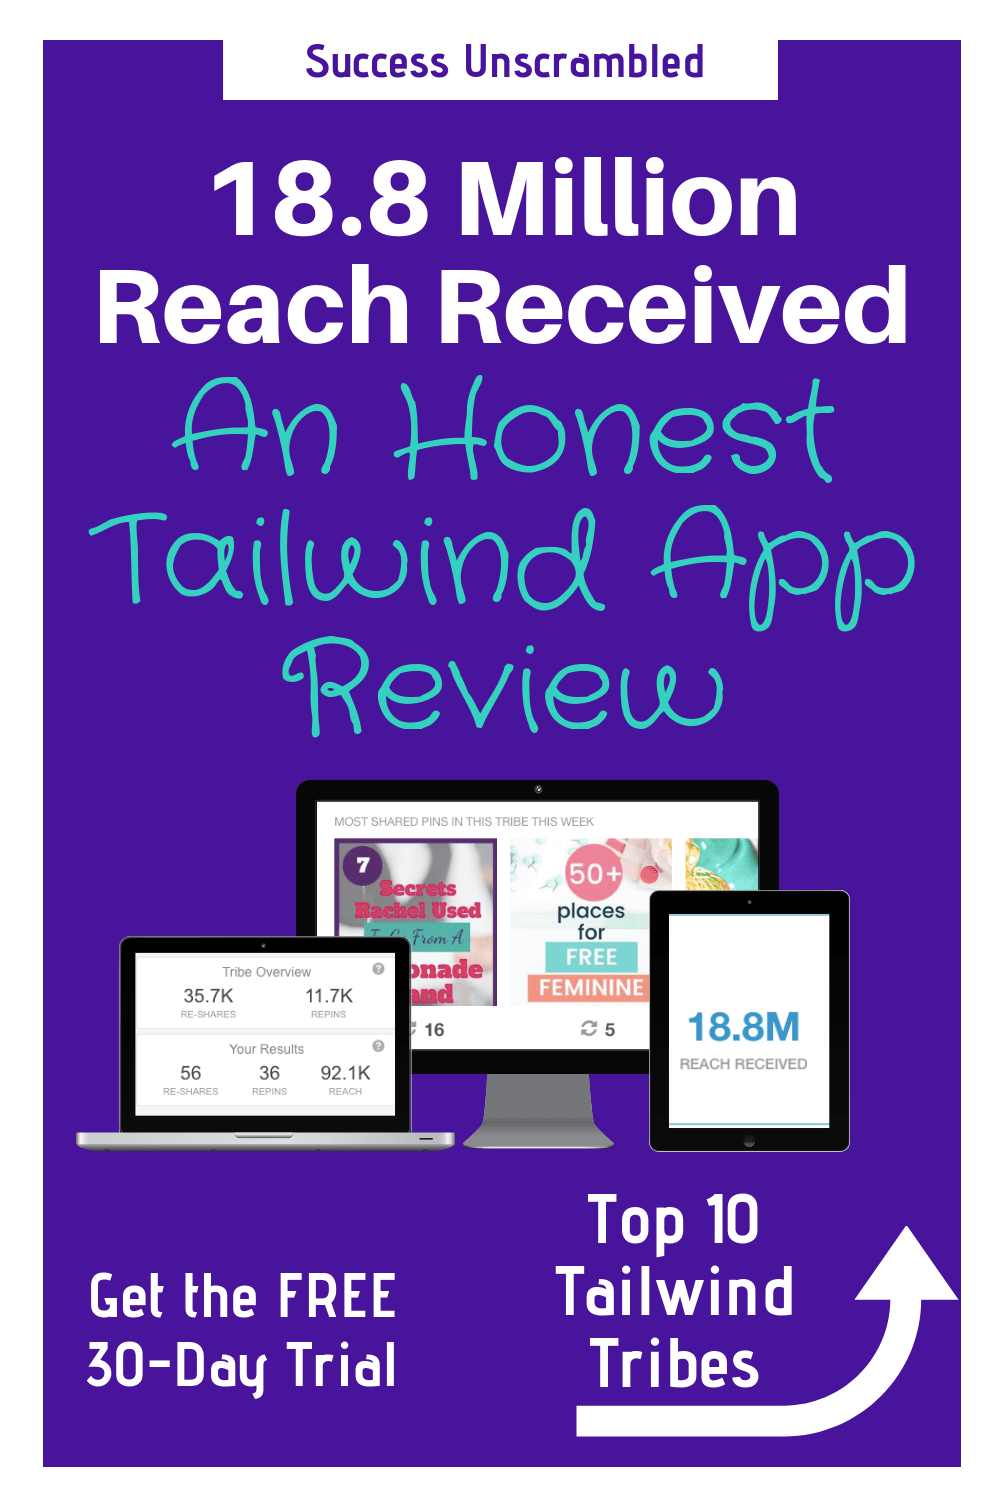 71.7 Million Reach Received An Honest Tailwind App Review